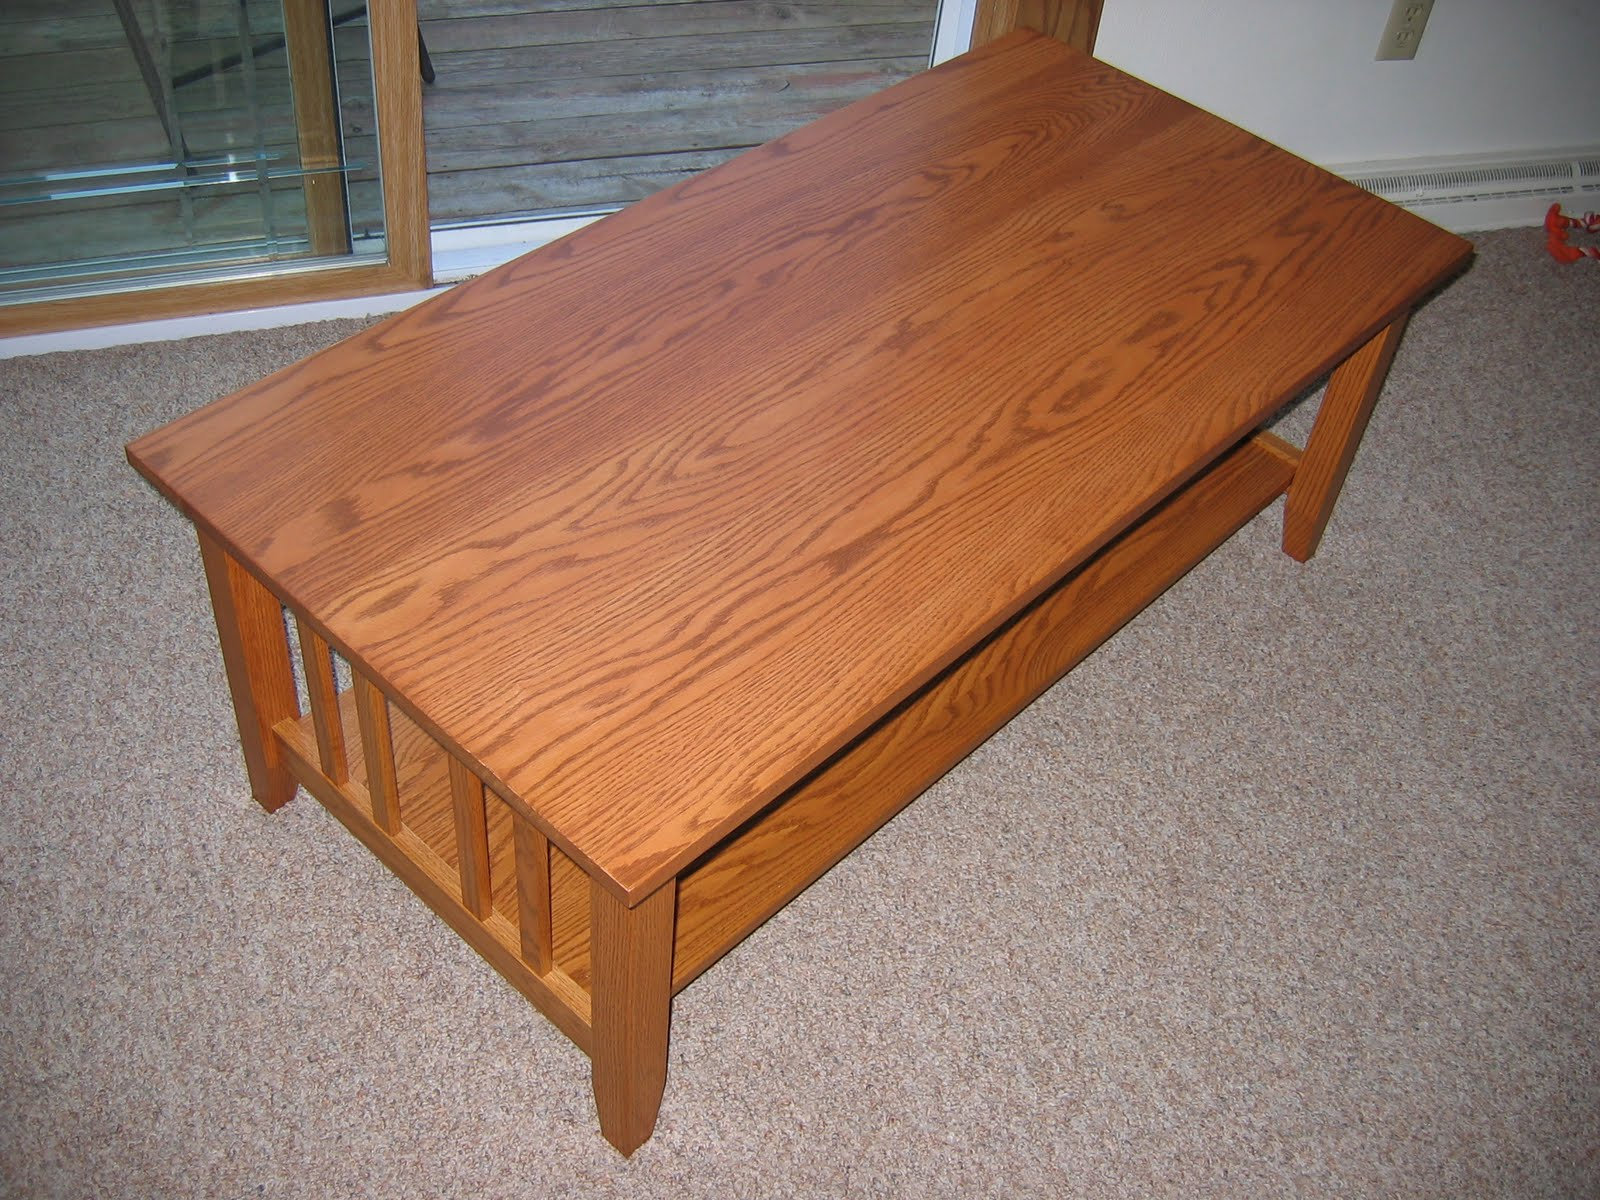 Chris Project Page Craftsman Style Coffee Table Done